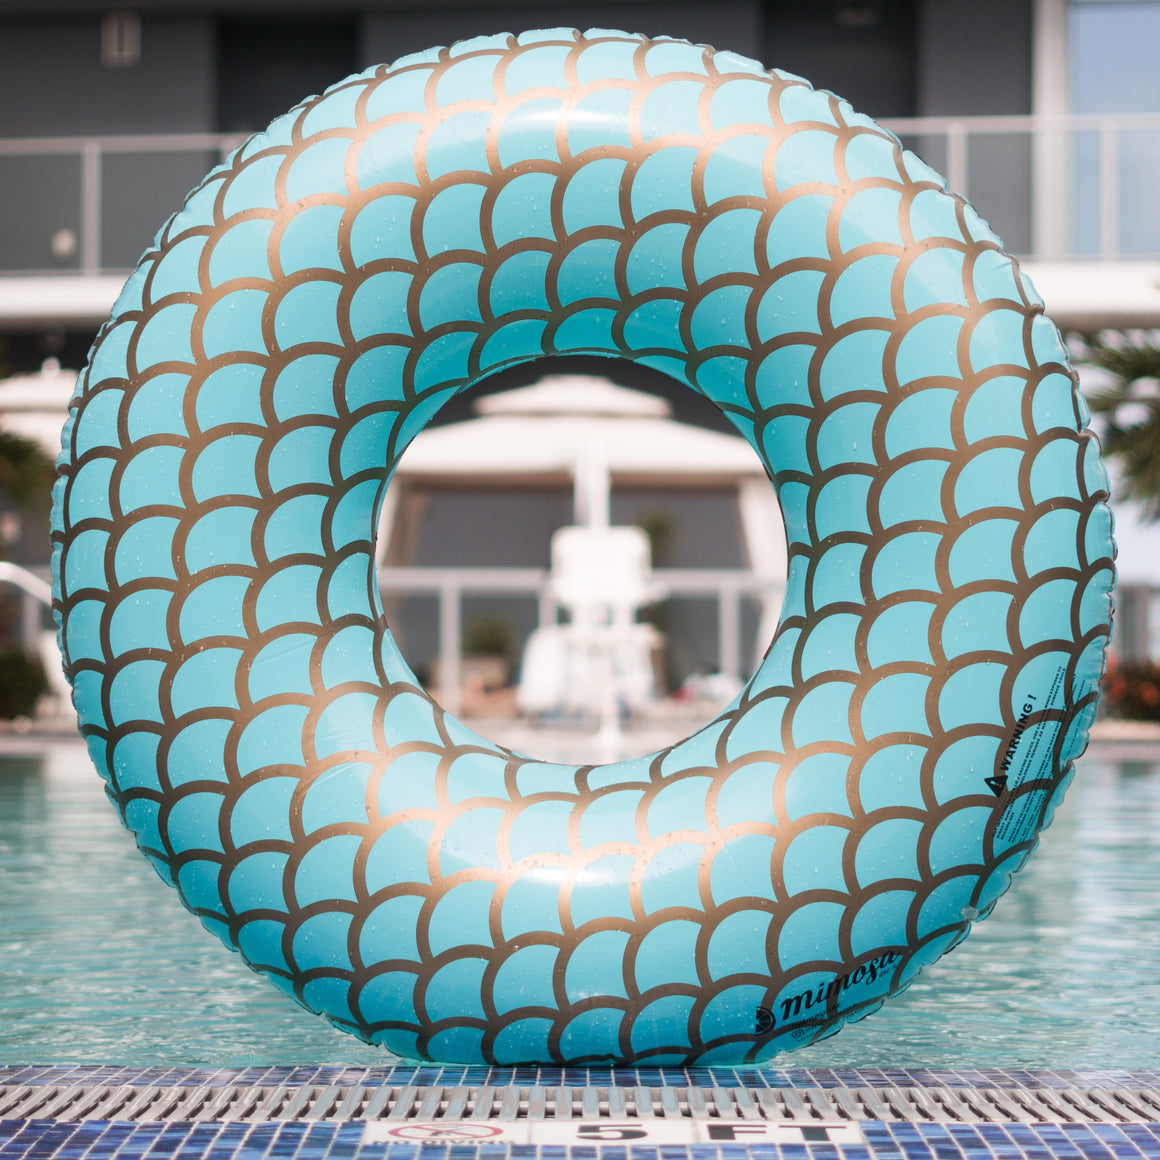 Mermaid Round Tube Pool Float by Mimosa Inc